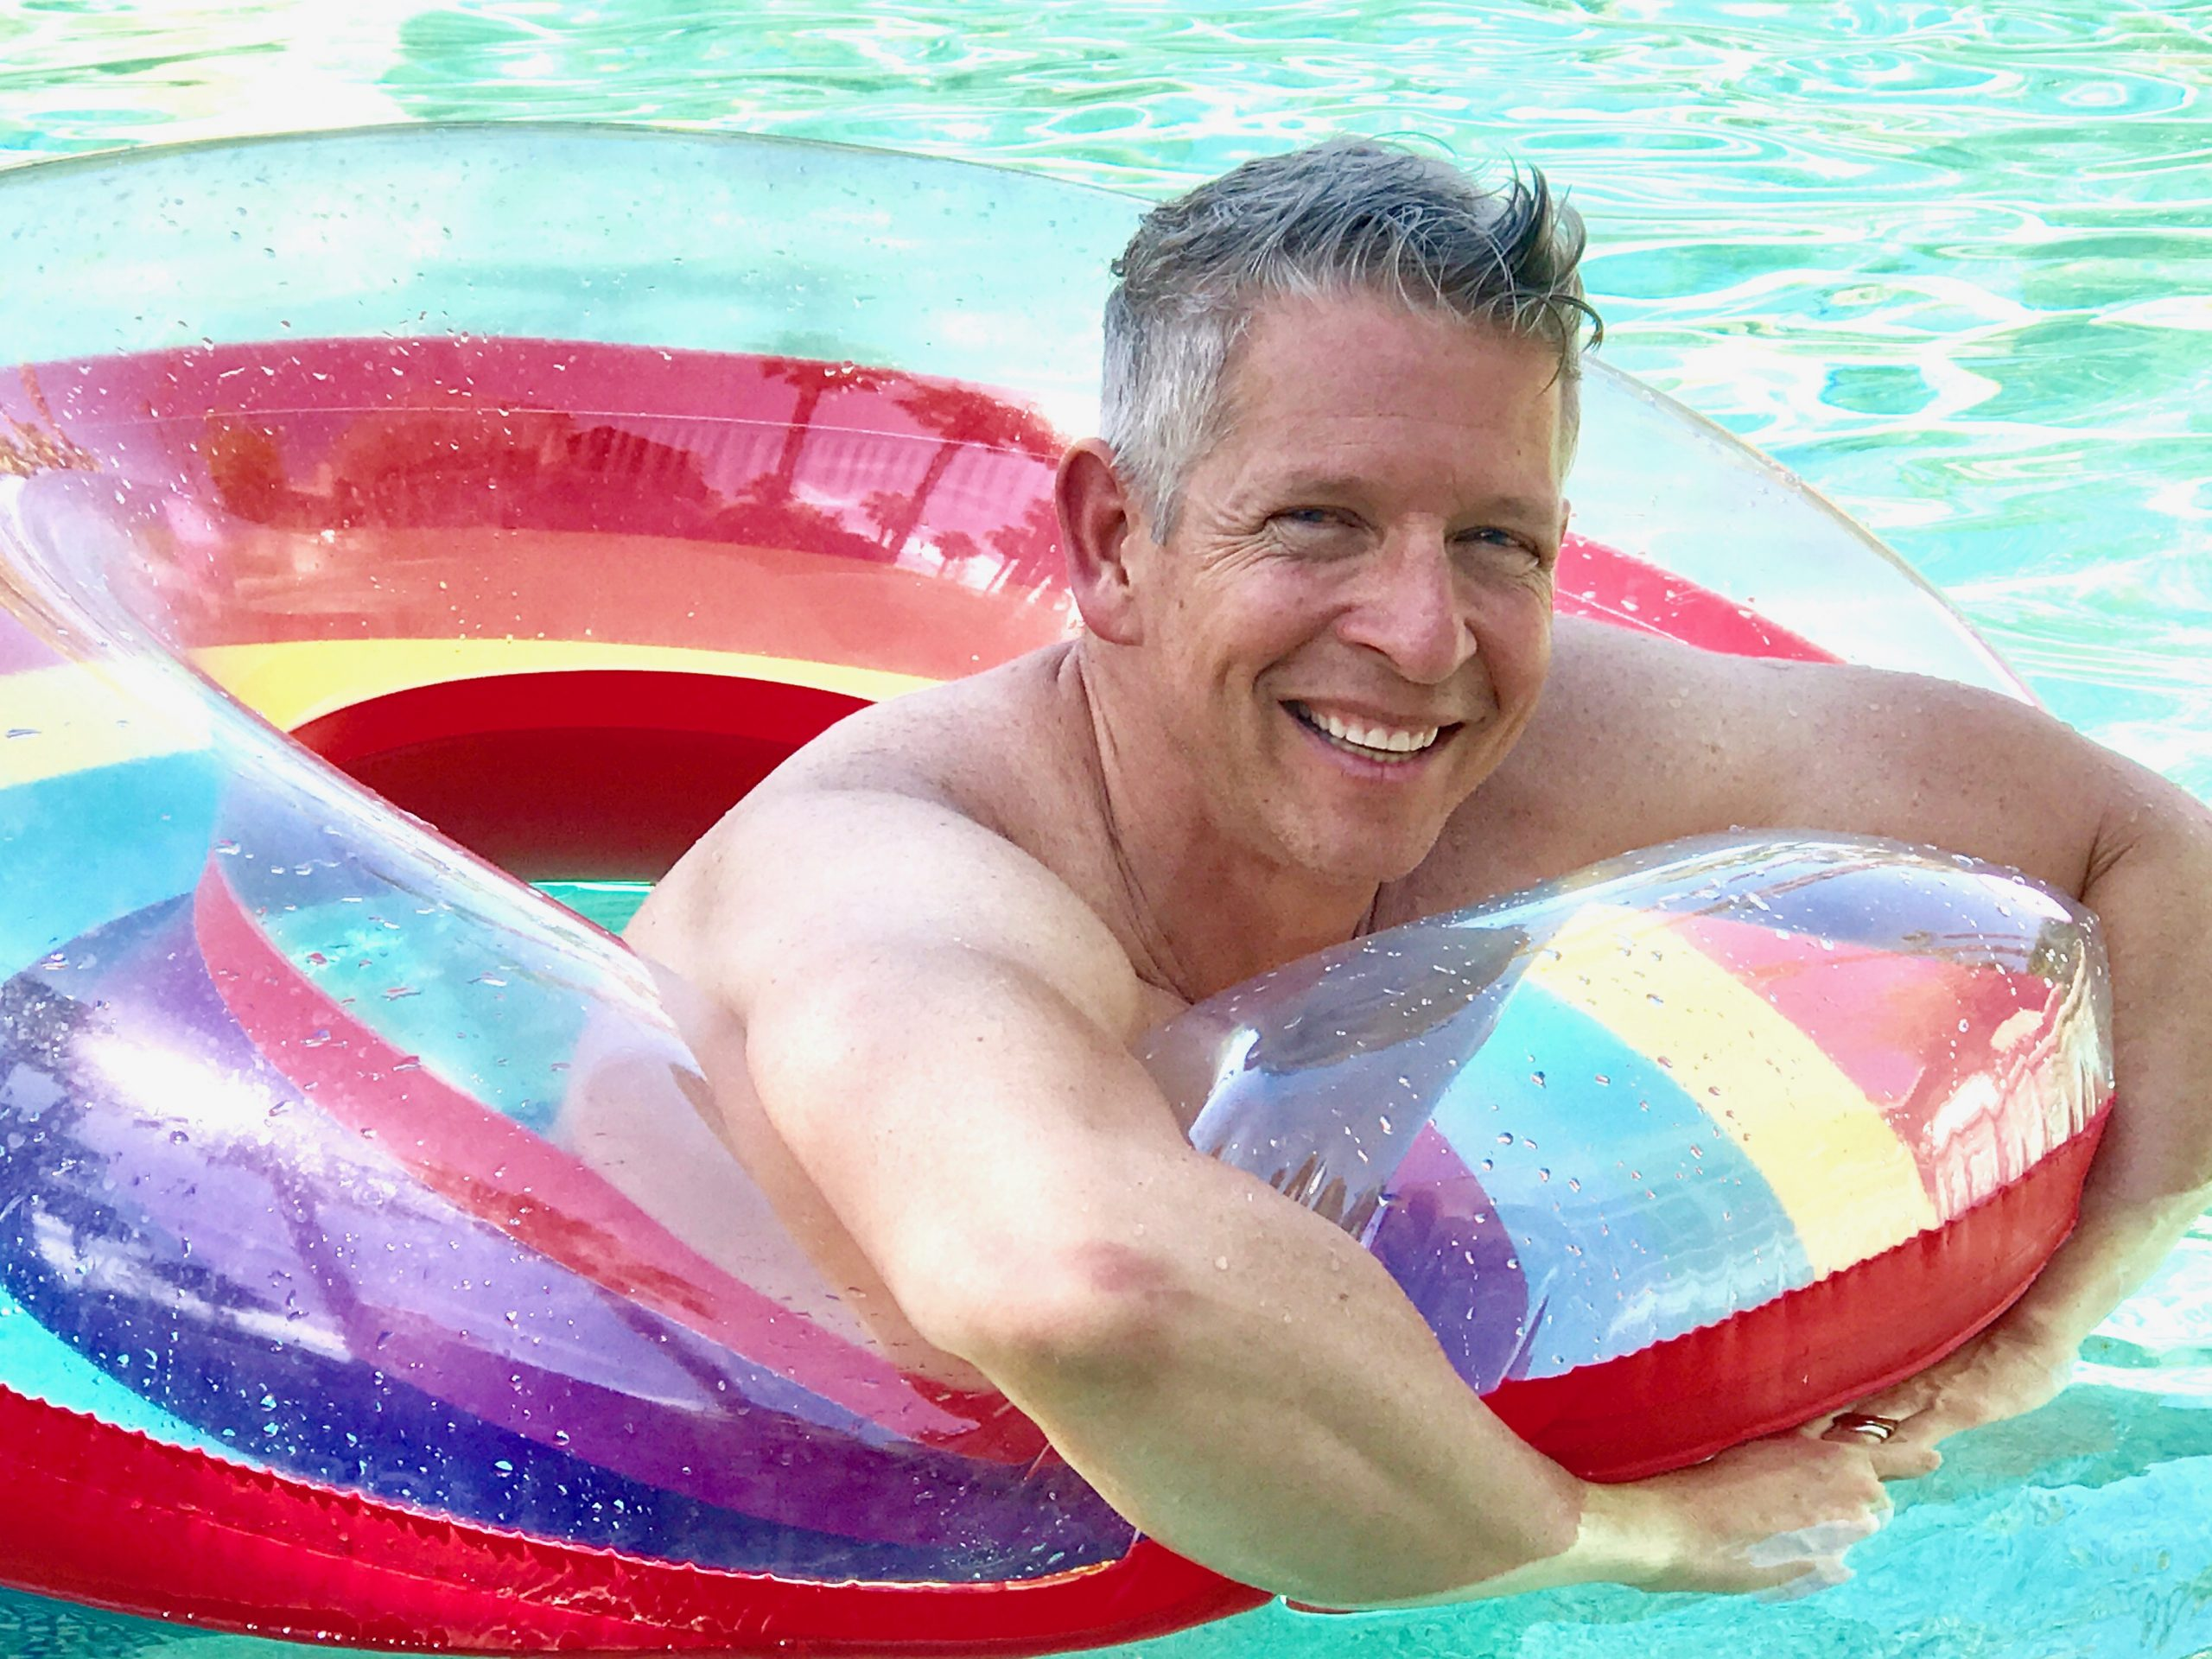 Smiling grey haired man floating in colorful rainbow pool toy